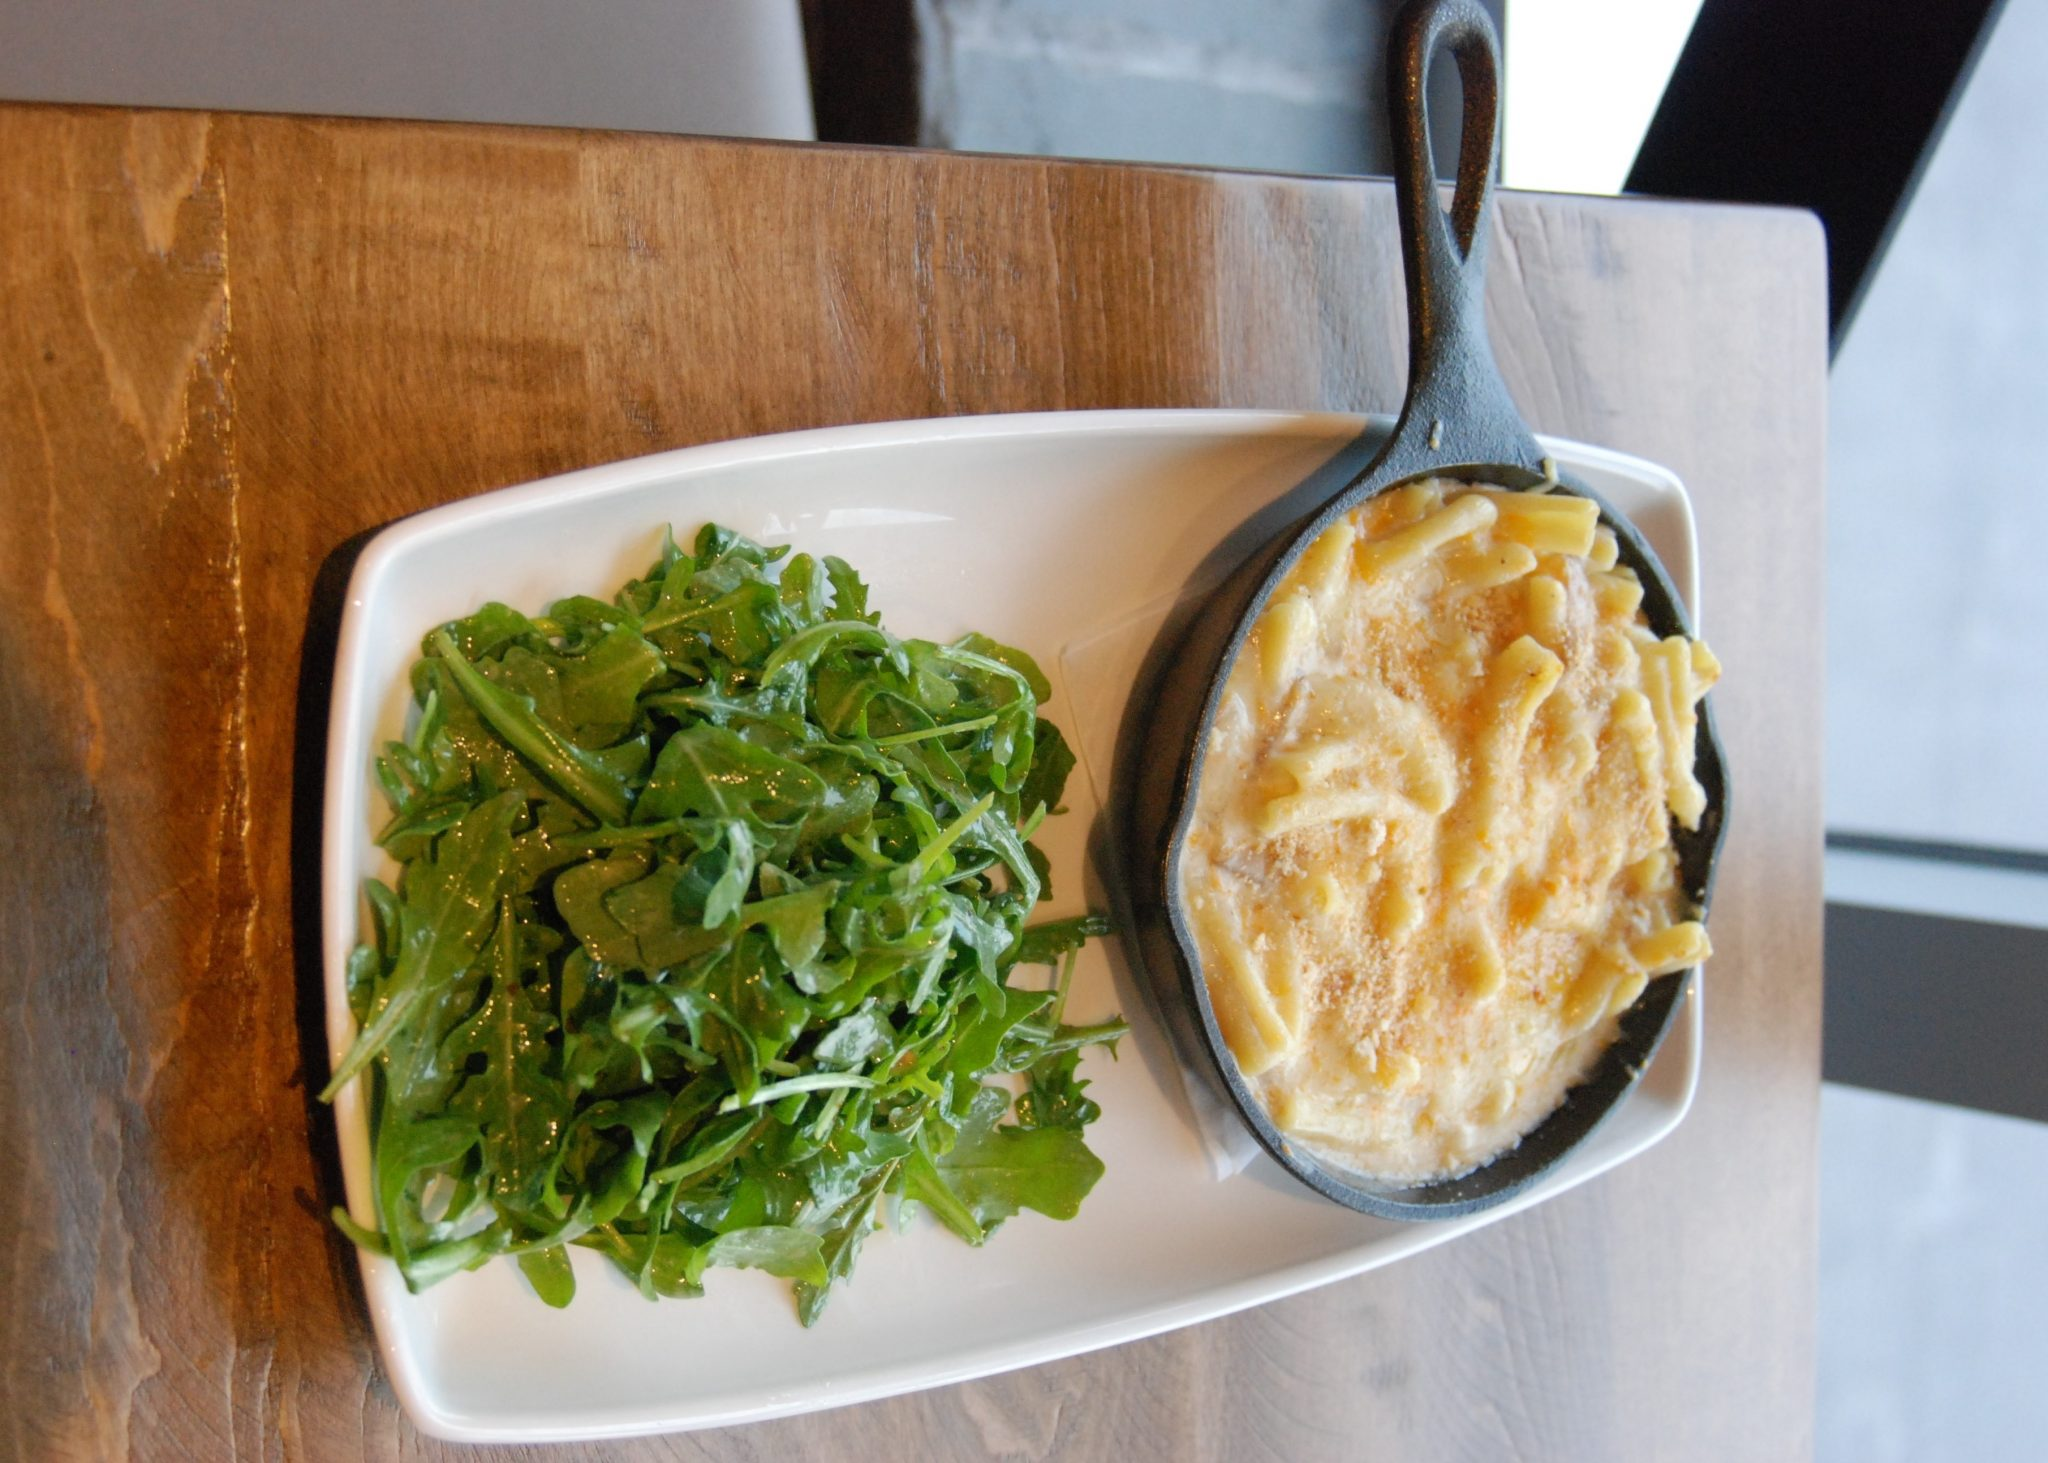 Satisfy your hunger for gaming at the Rec Room. Macaroni and cheese and arugula salad at the Rec Room in London, Ontario. Photo by Emily Stewart.